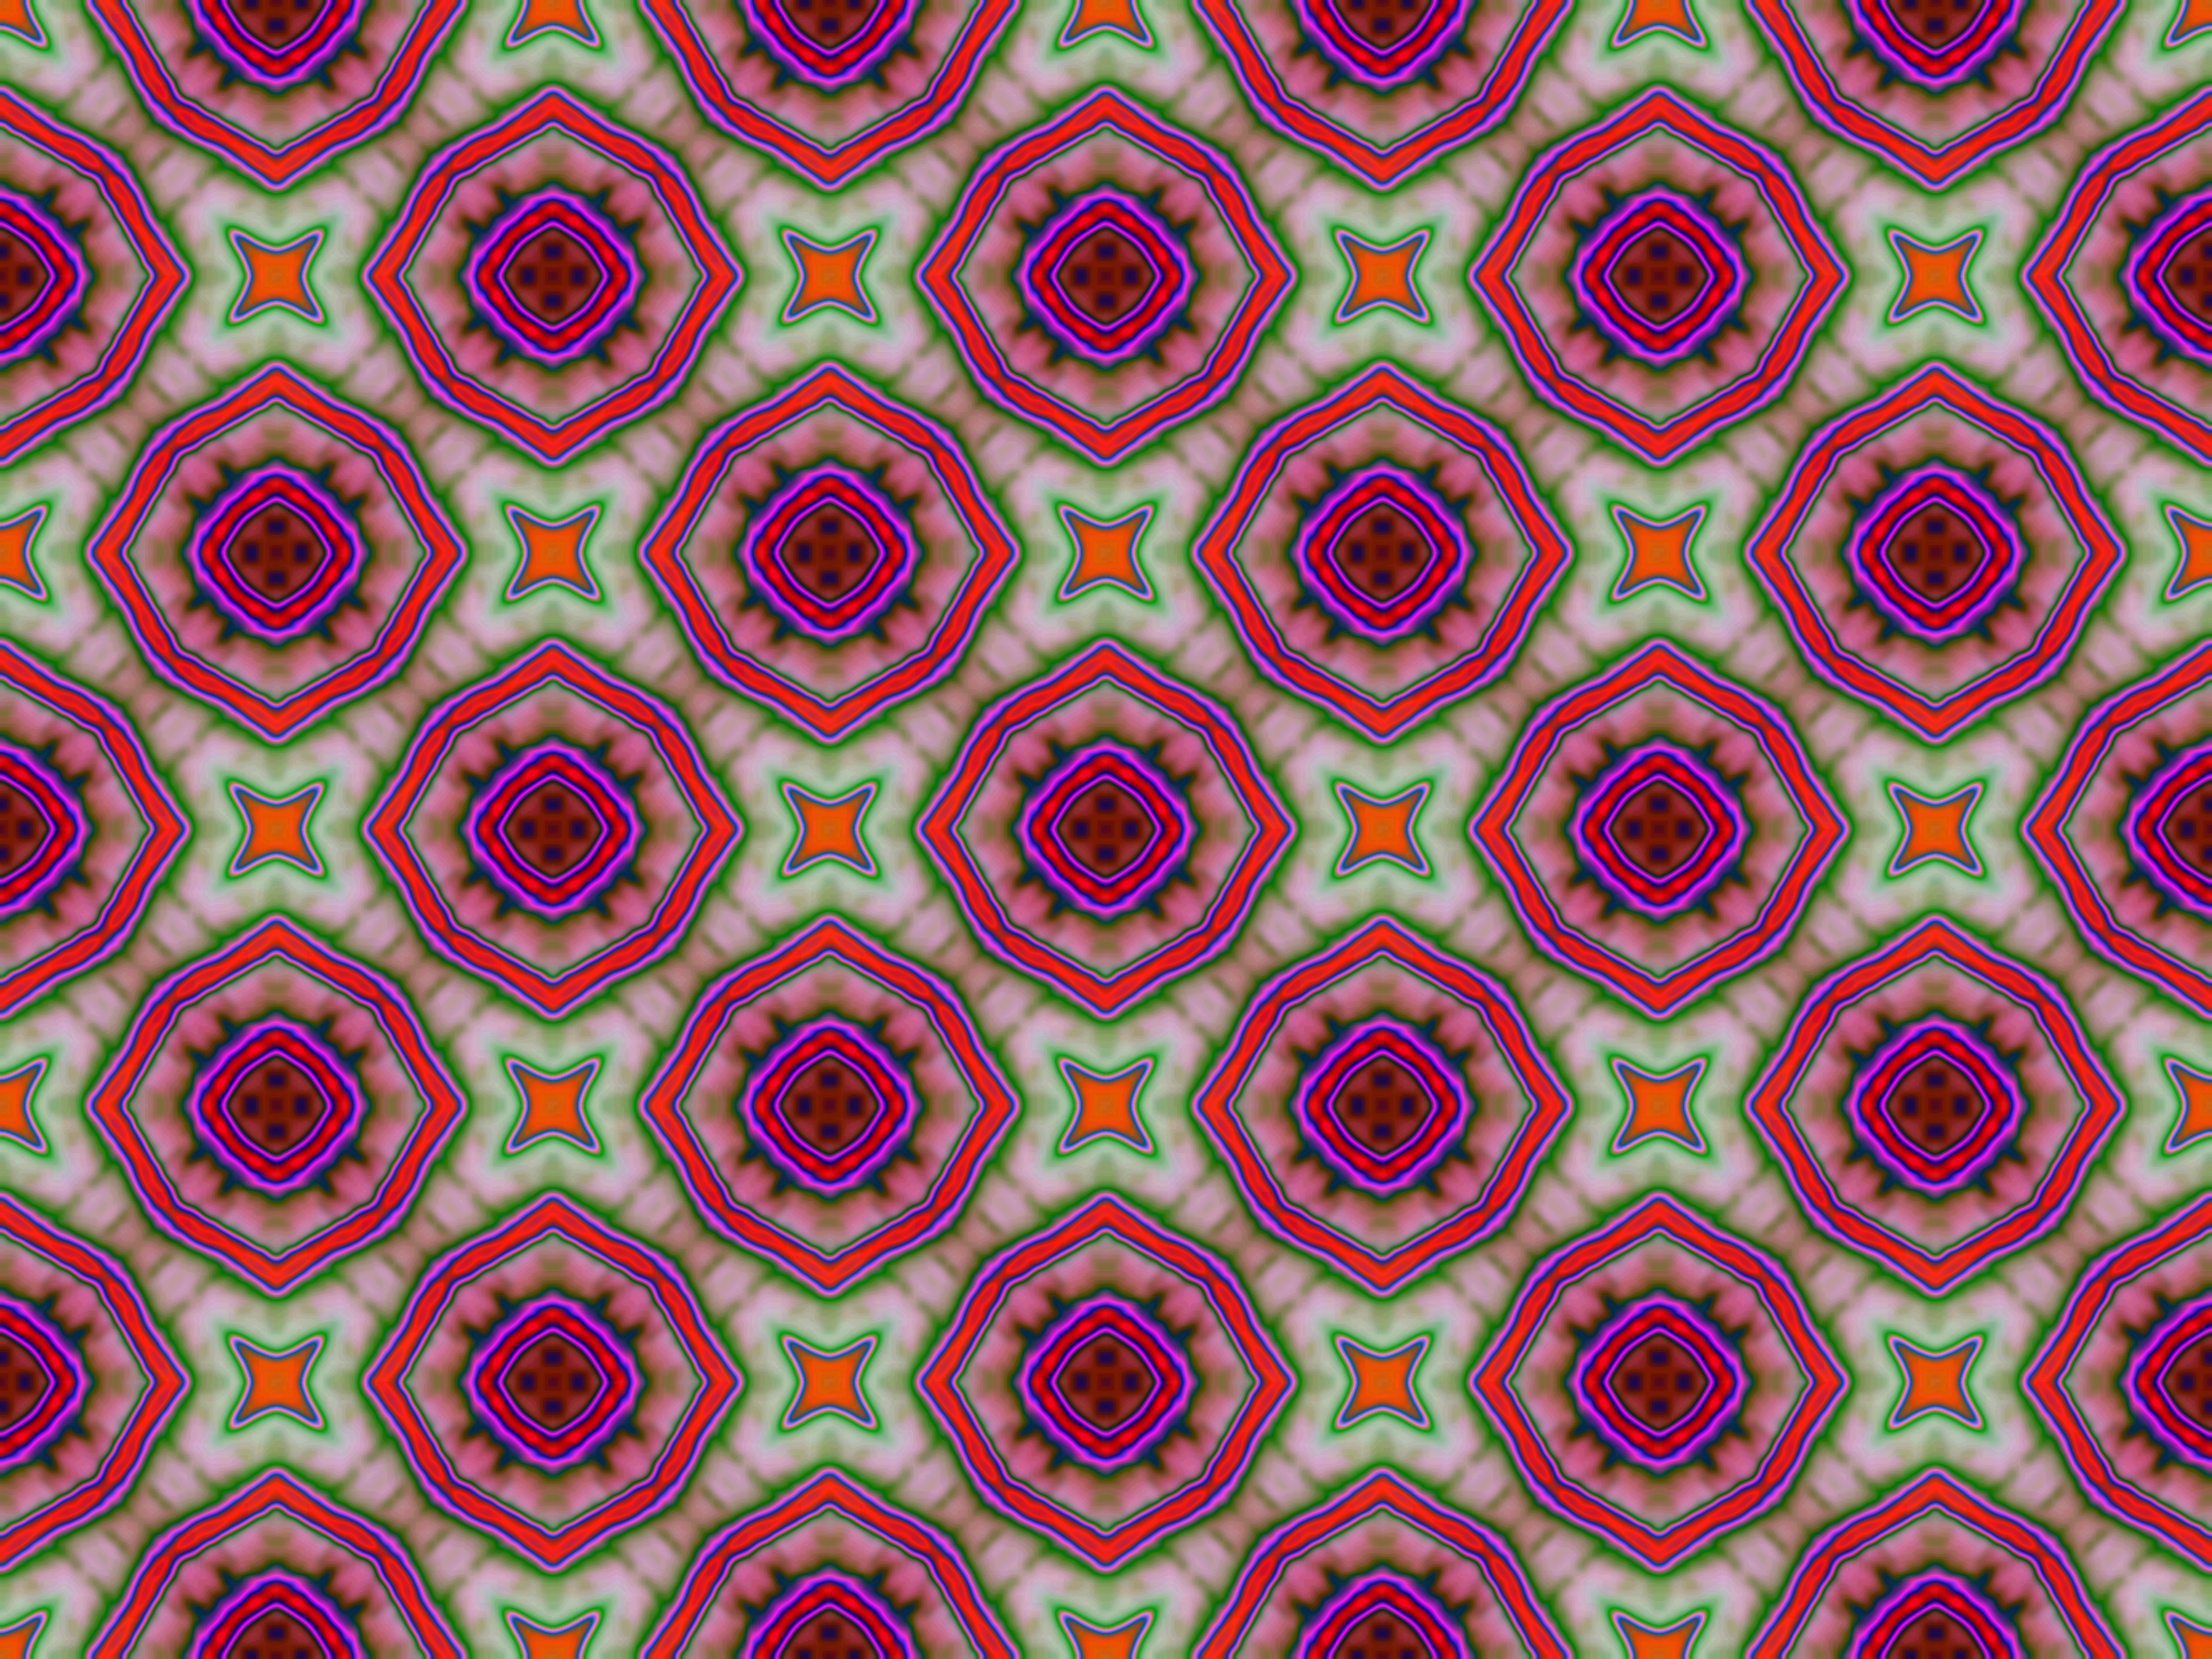 Background pattern 289 (colour 2) by Firkin